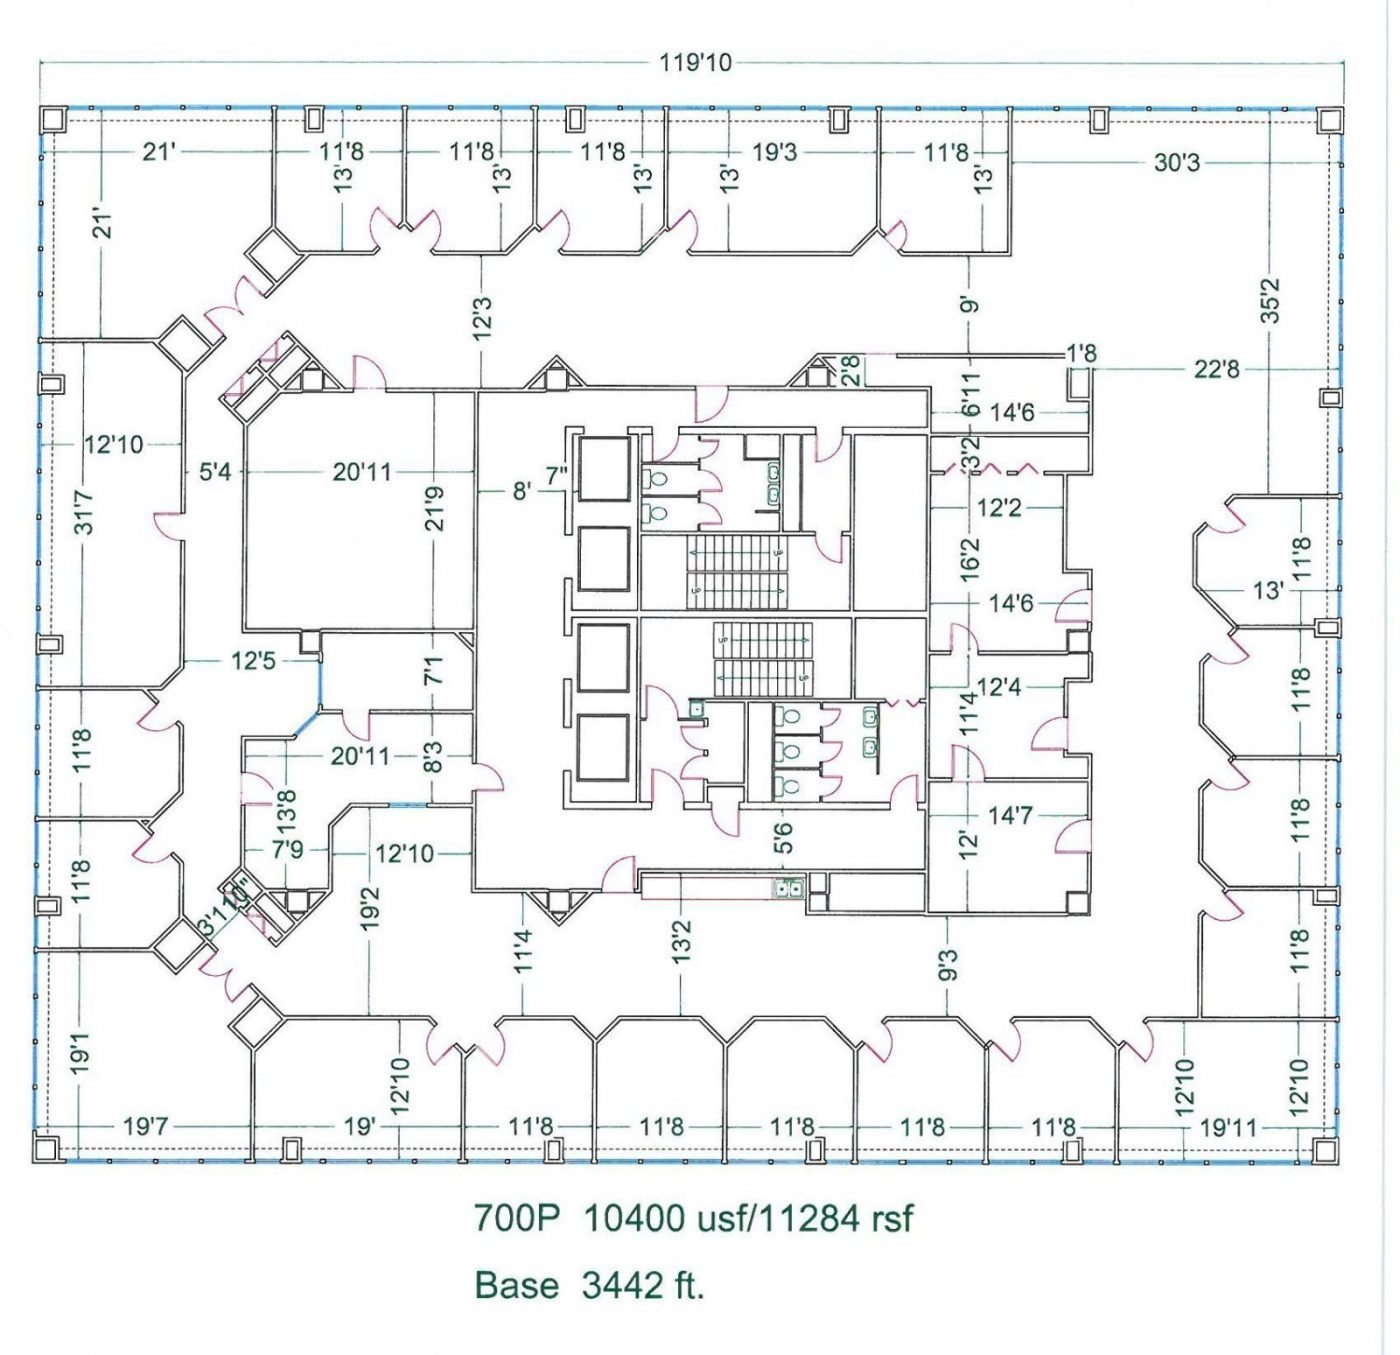 Floor Plan for unit 700P at 20755 Greenfield Rd - 7th Floor Southfield, MI 48075